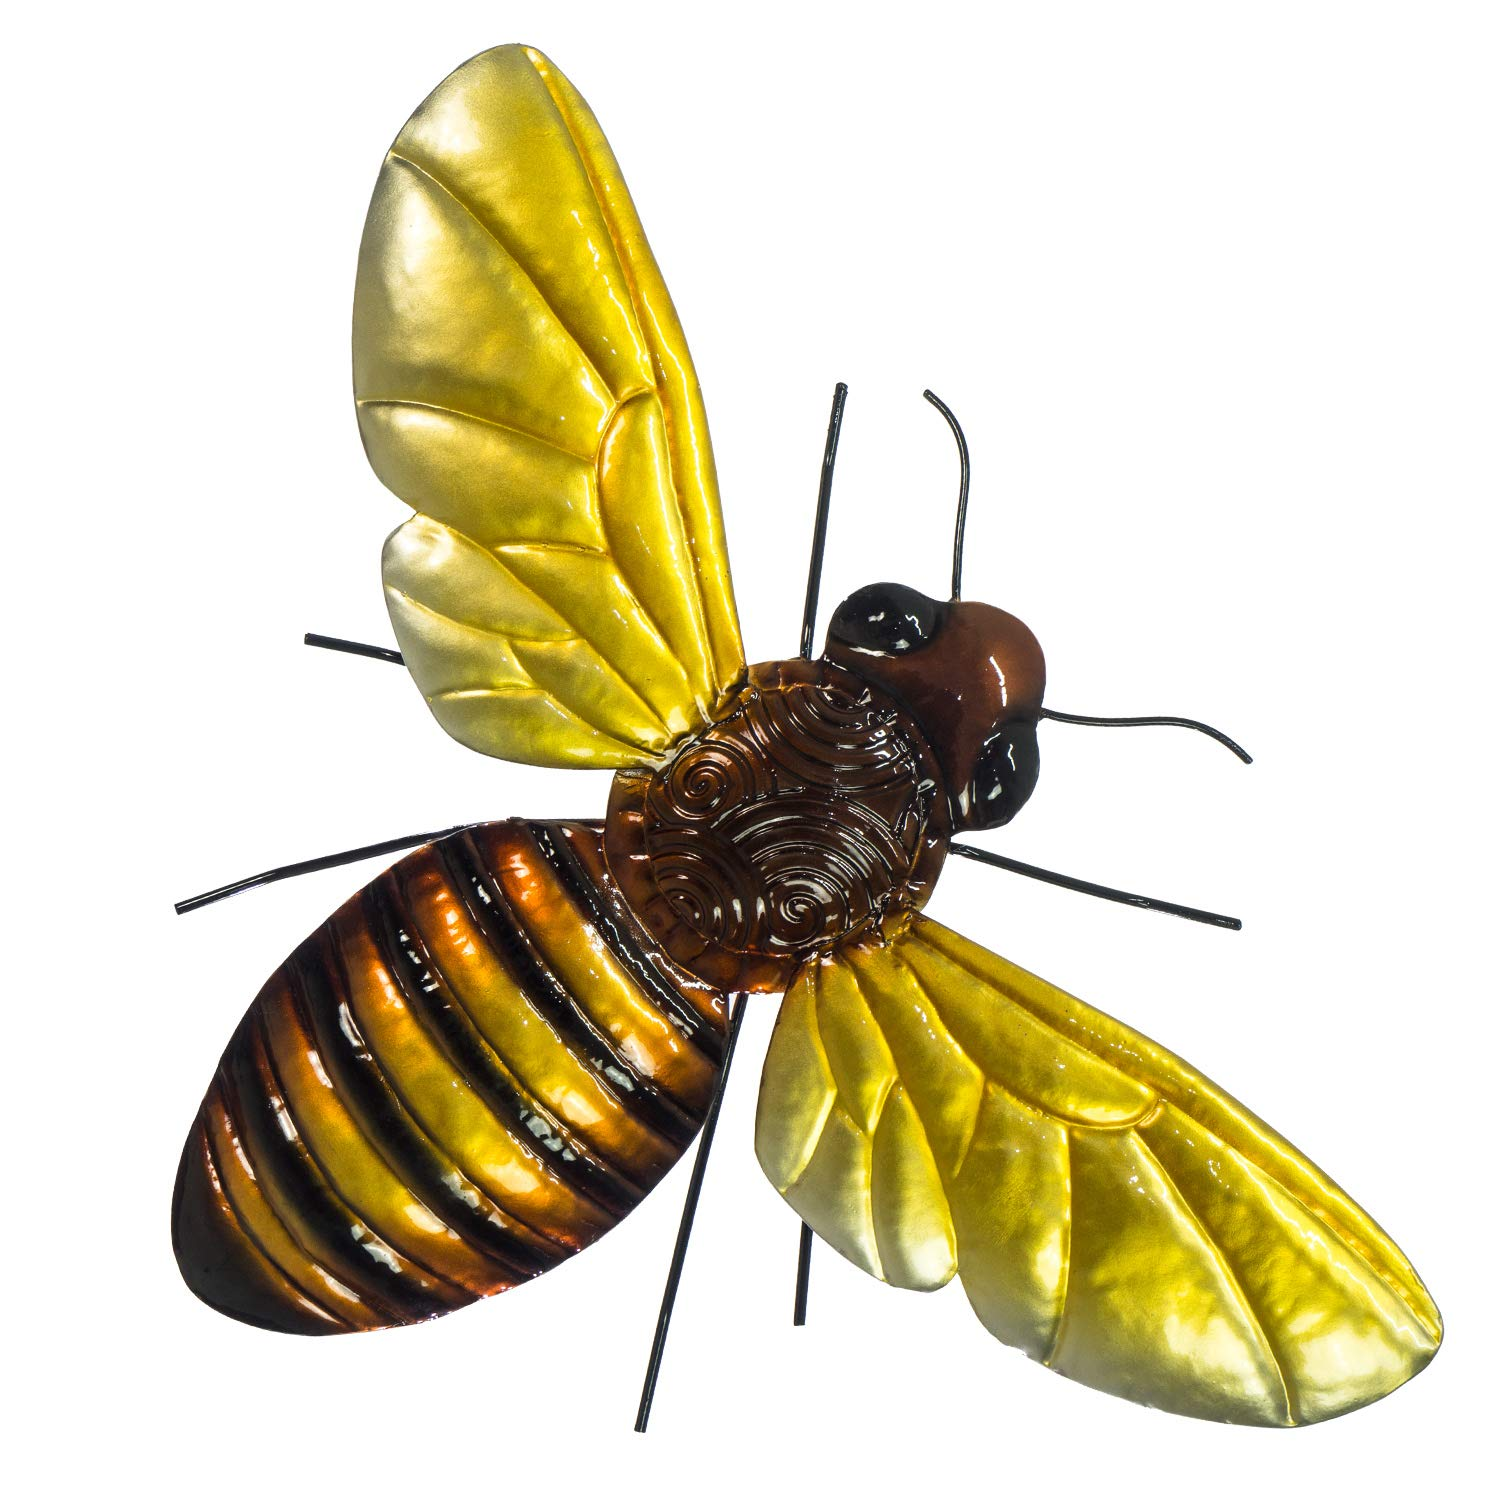 """Bumble Bee - Metal 3D Hand-Painted Wall Decor - 17 ½"""" x 13"""" - Colorful Home Decoration - Indoor or Outdoor Use - Wall Hanging in Classic Bee Colors"""